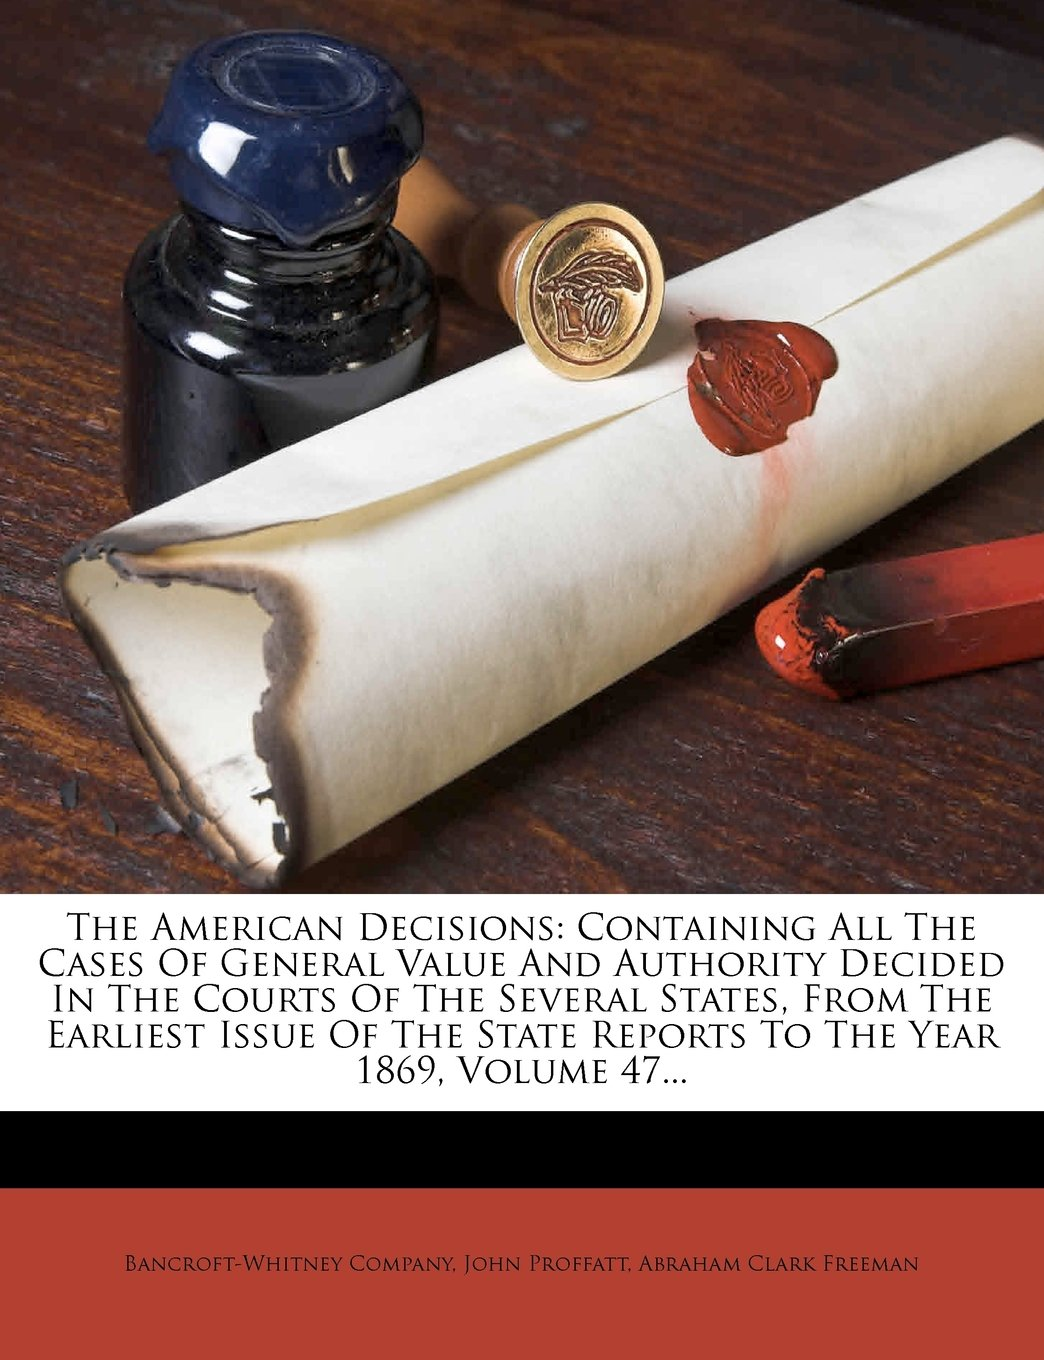 The American Decisions: Containing All The Cases Of General Value And Authority Decided In The Courts Of The Several States, From The Earliest Issue Of The State Reports To The Year 1869, Volume 47... pdf